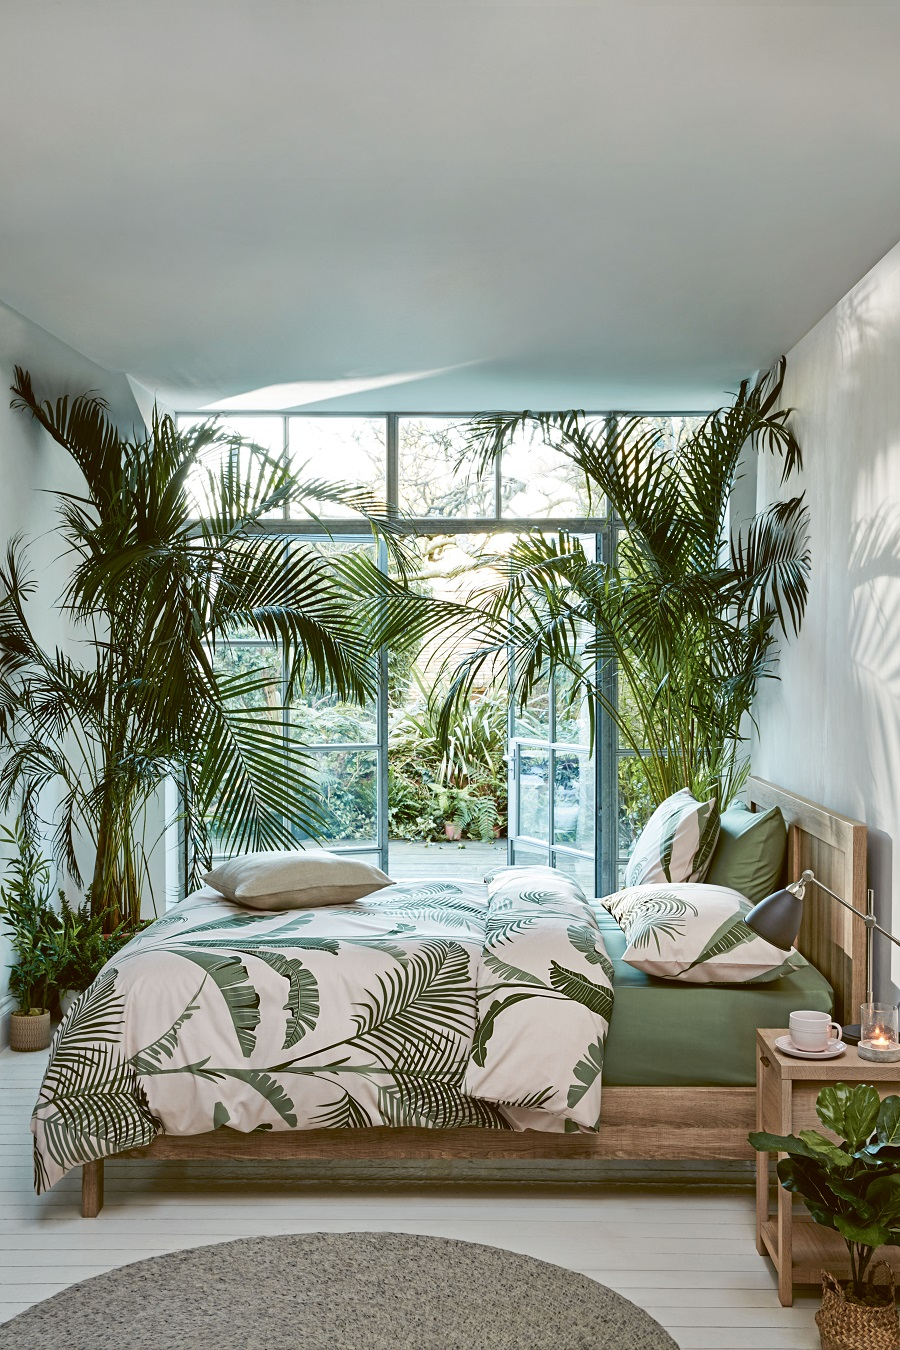 6 Ways to Introduce Summer into the Bedroom